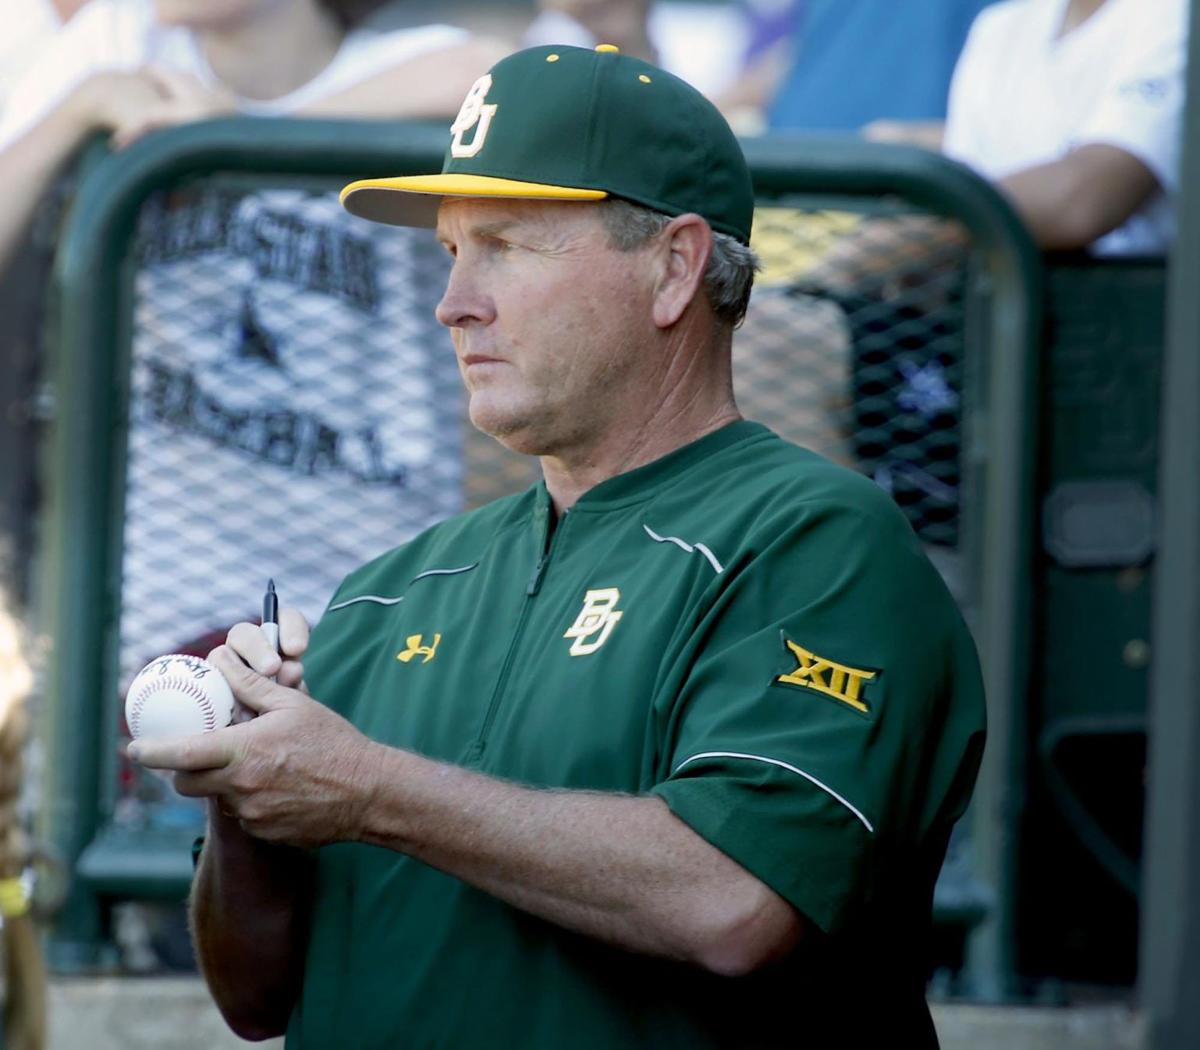 Steve Smith let go as Baylor baseball coach after 21 years